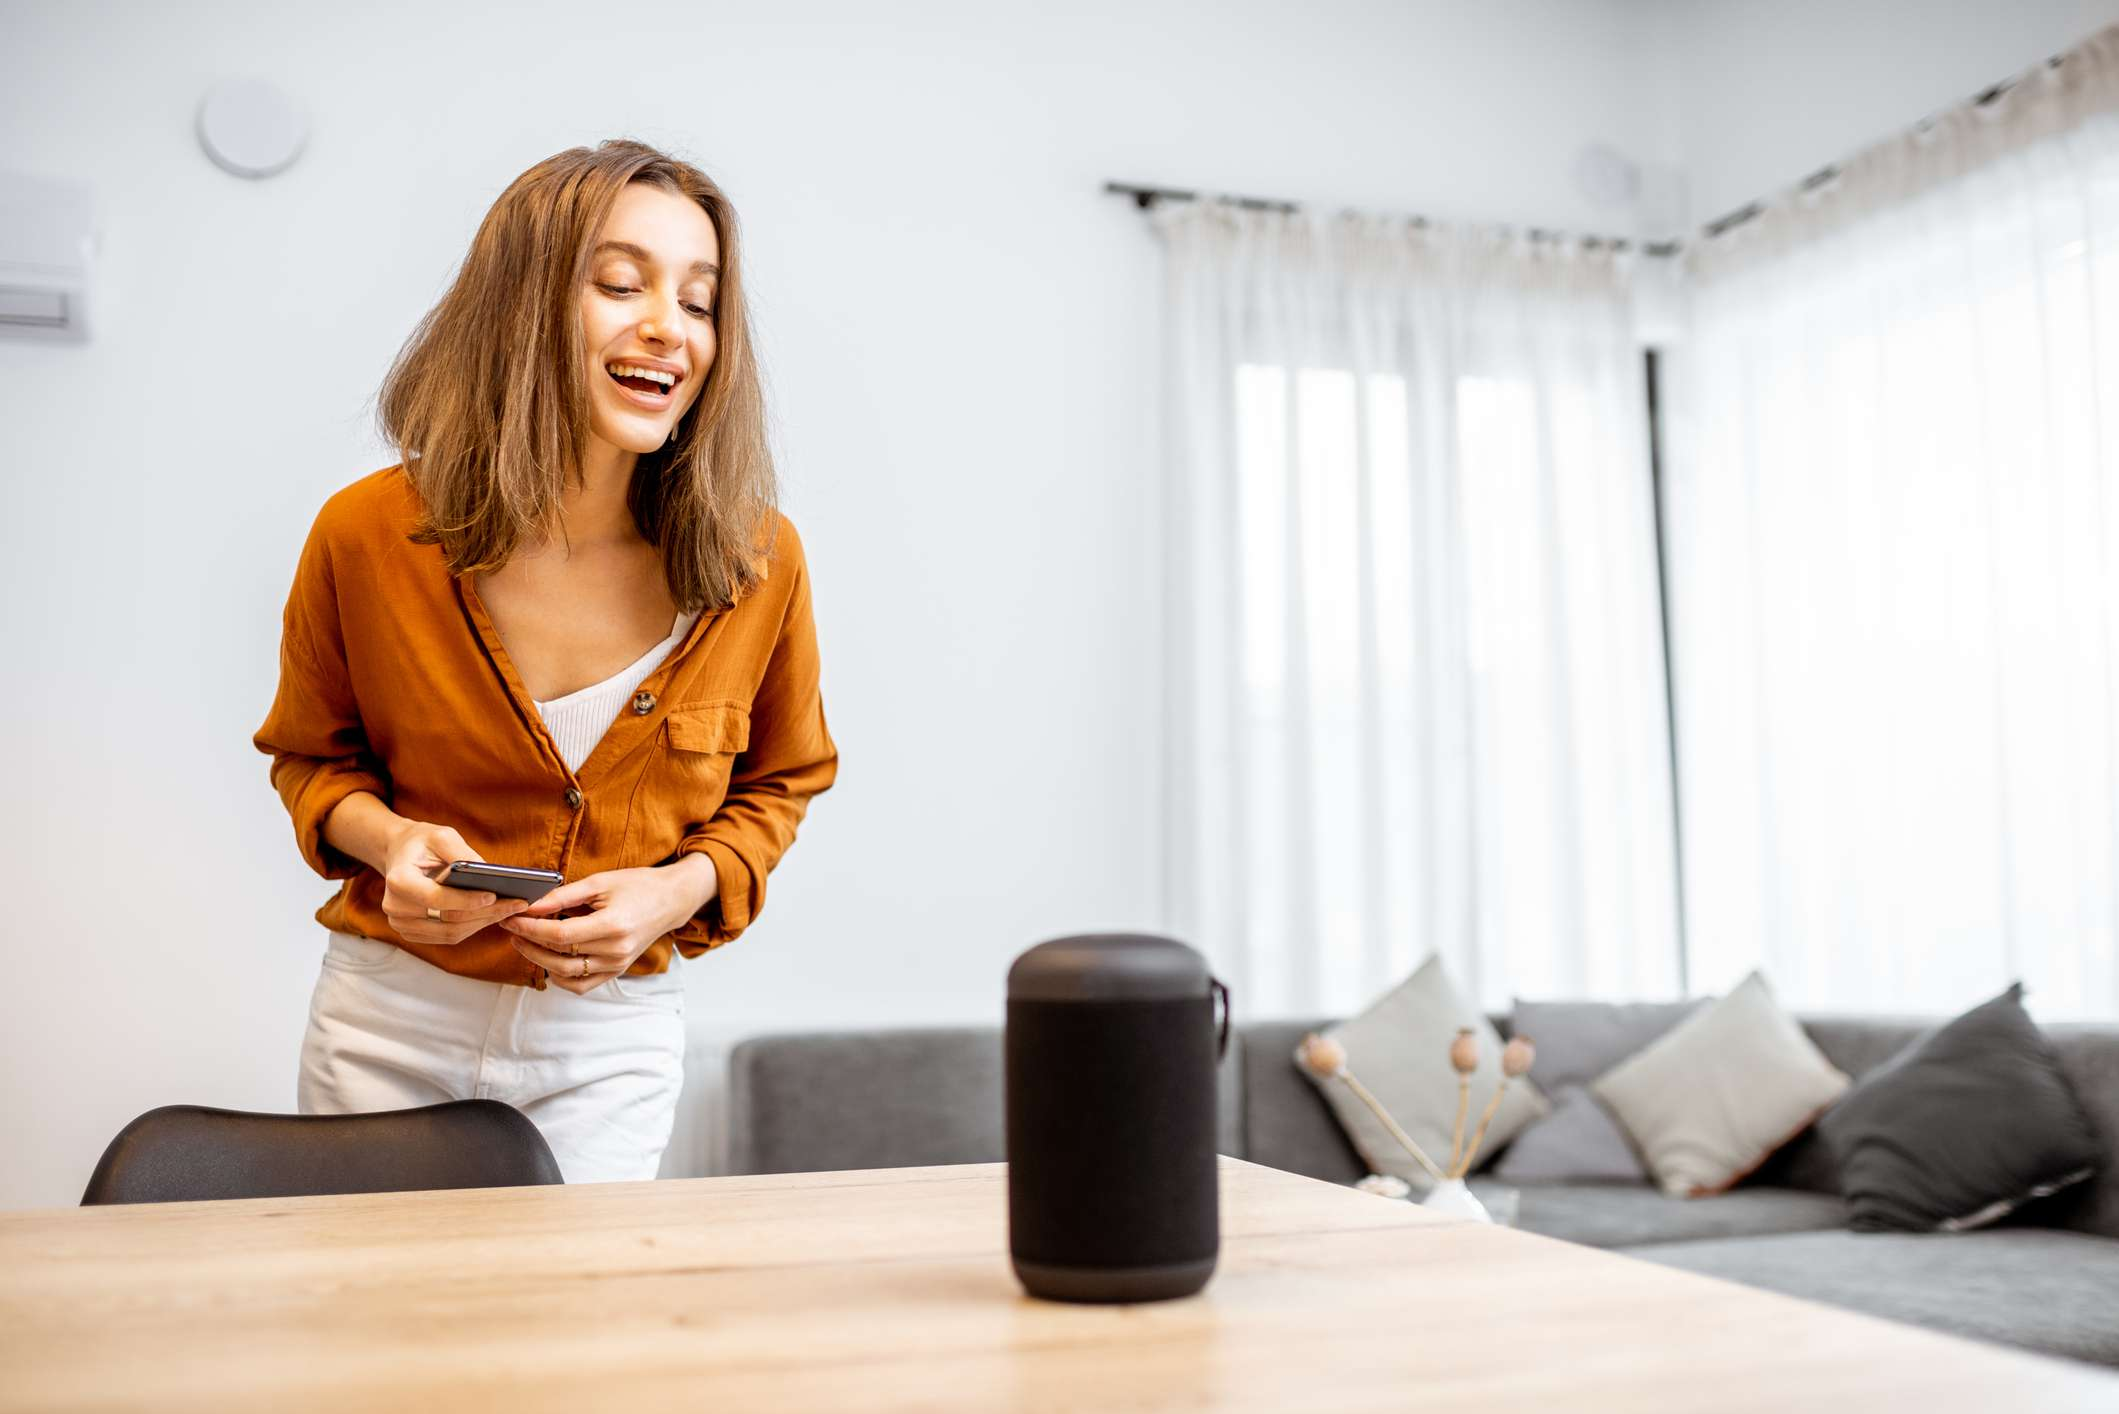 Someone talking to a smart home device in their living space.